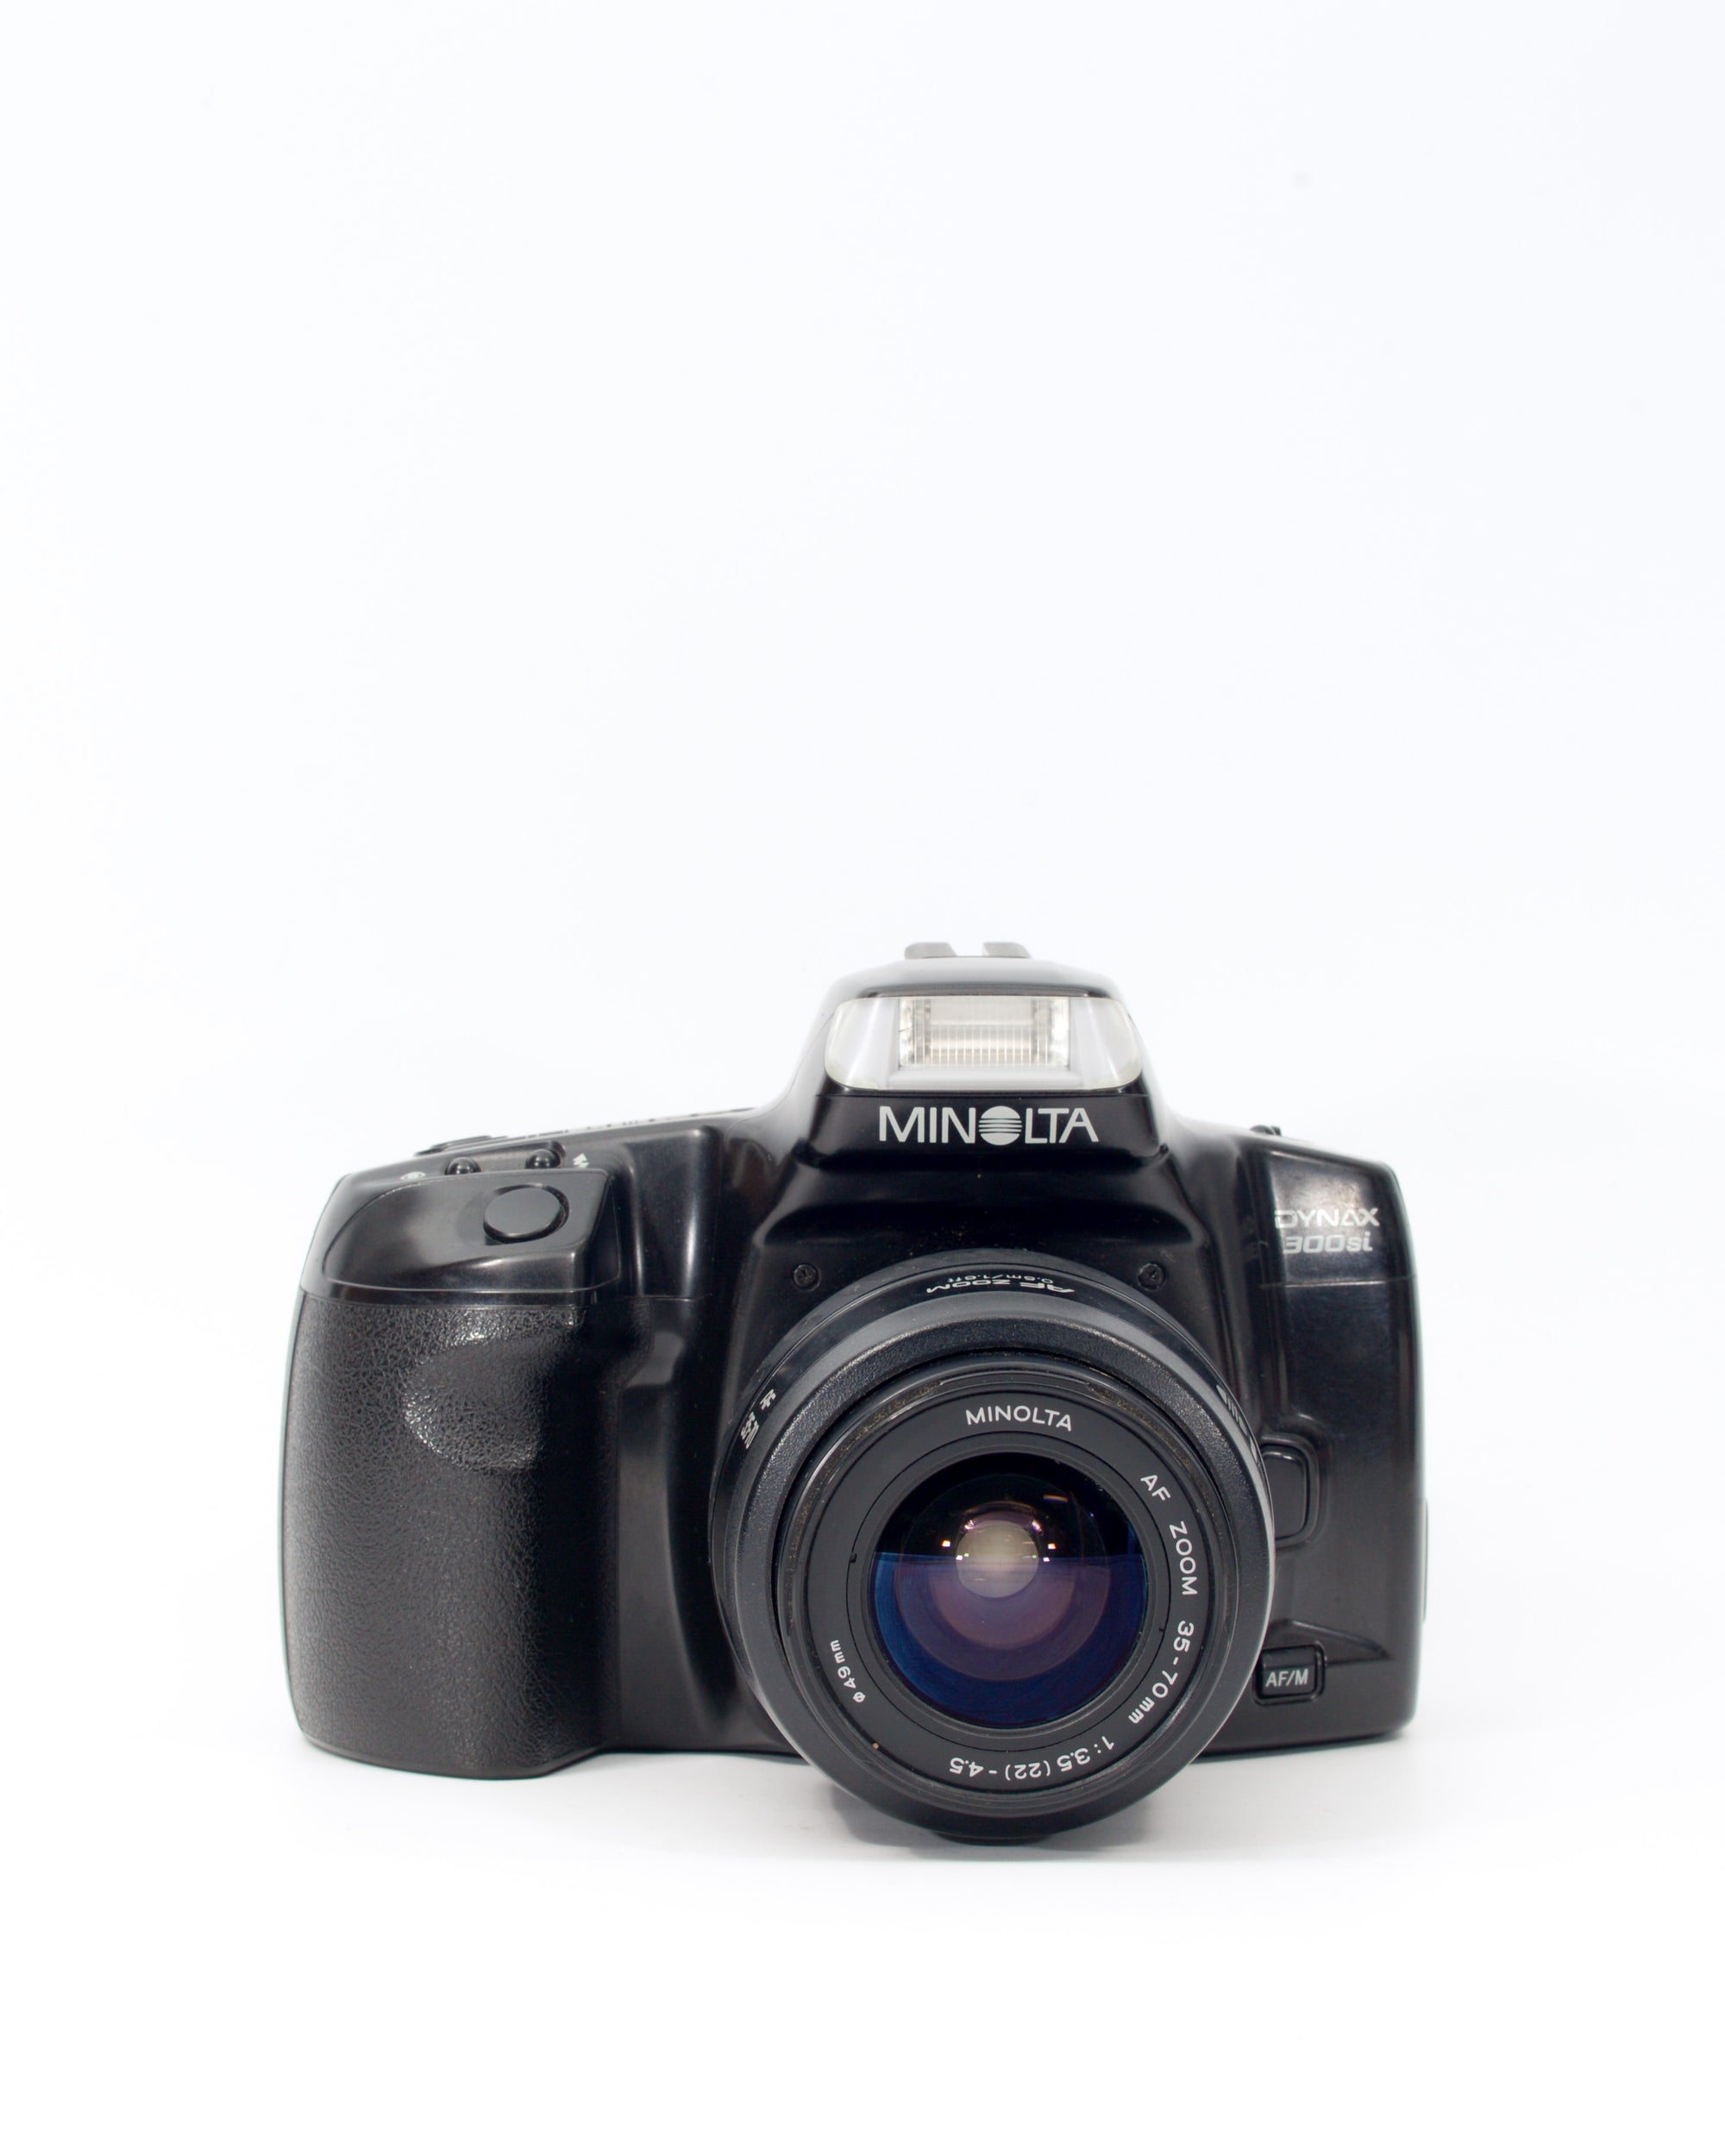 Minolta Dynax 300si 35mm SLR film camera with 35-75mm lens